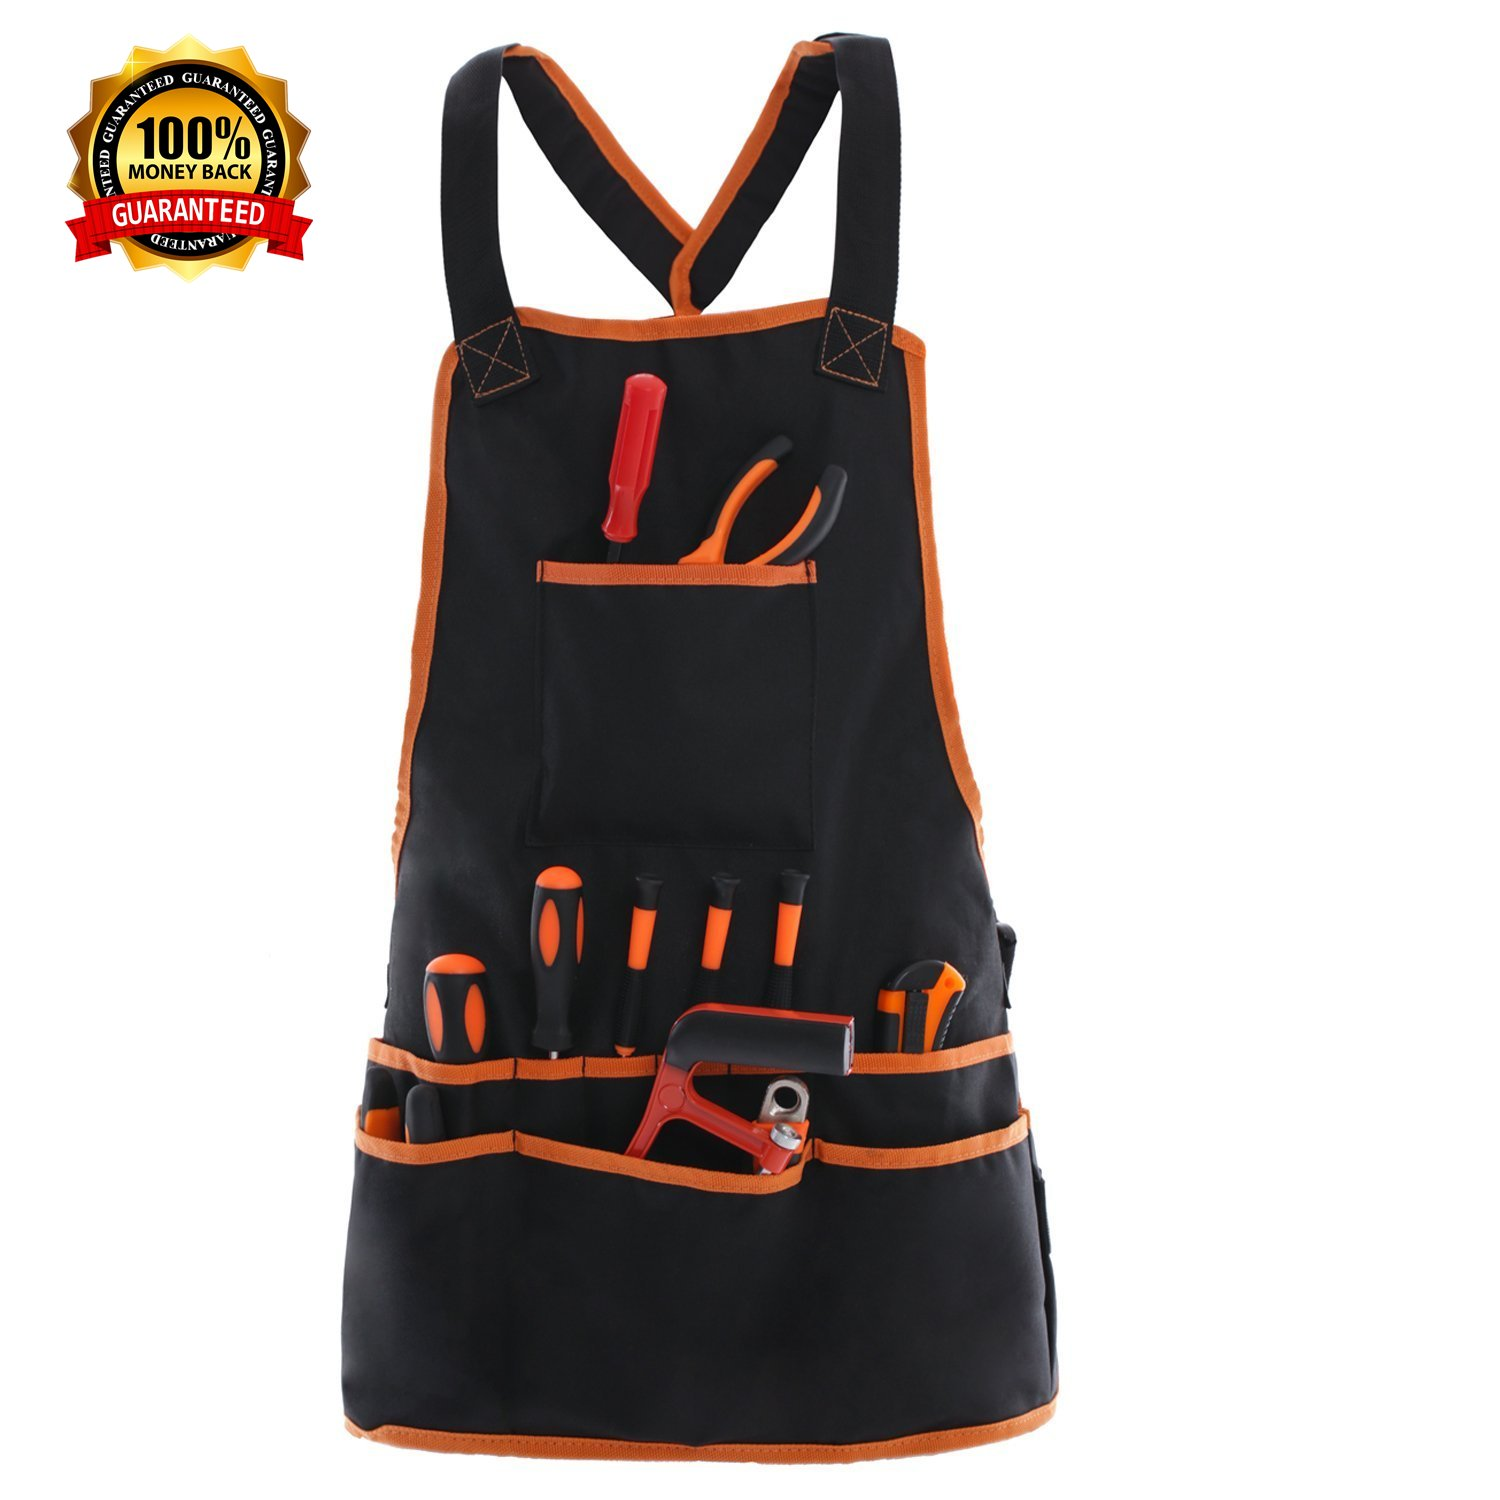 Work Apron tool apron with 16 Tool Pockets tool belt, Adjustable szie(XS-XXL) vest Tool Apron Up ,for mans work apron and women work apron with waterproof apron and Canvas apron by JJYGCGJ